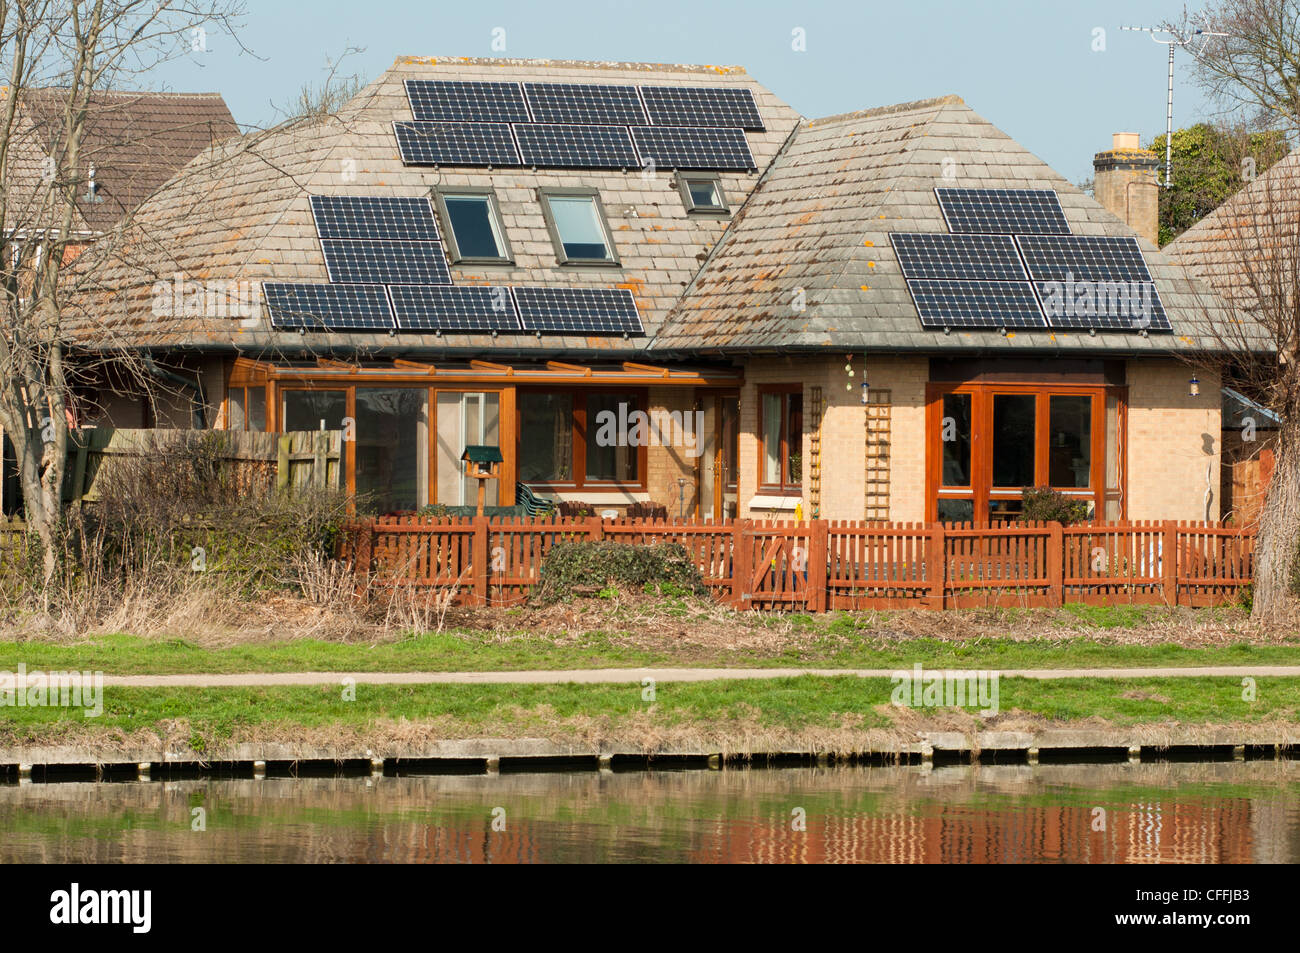 Solar panels on the roof of a house on the river Cam near Cambridge. England. Stock Photo